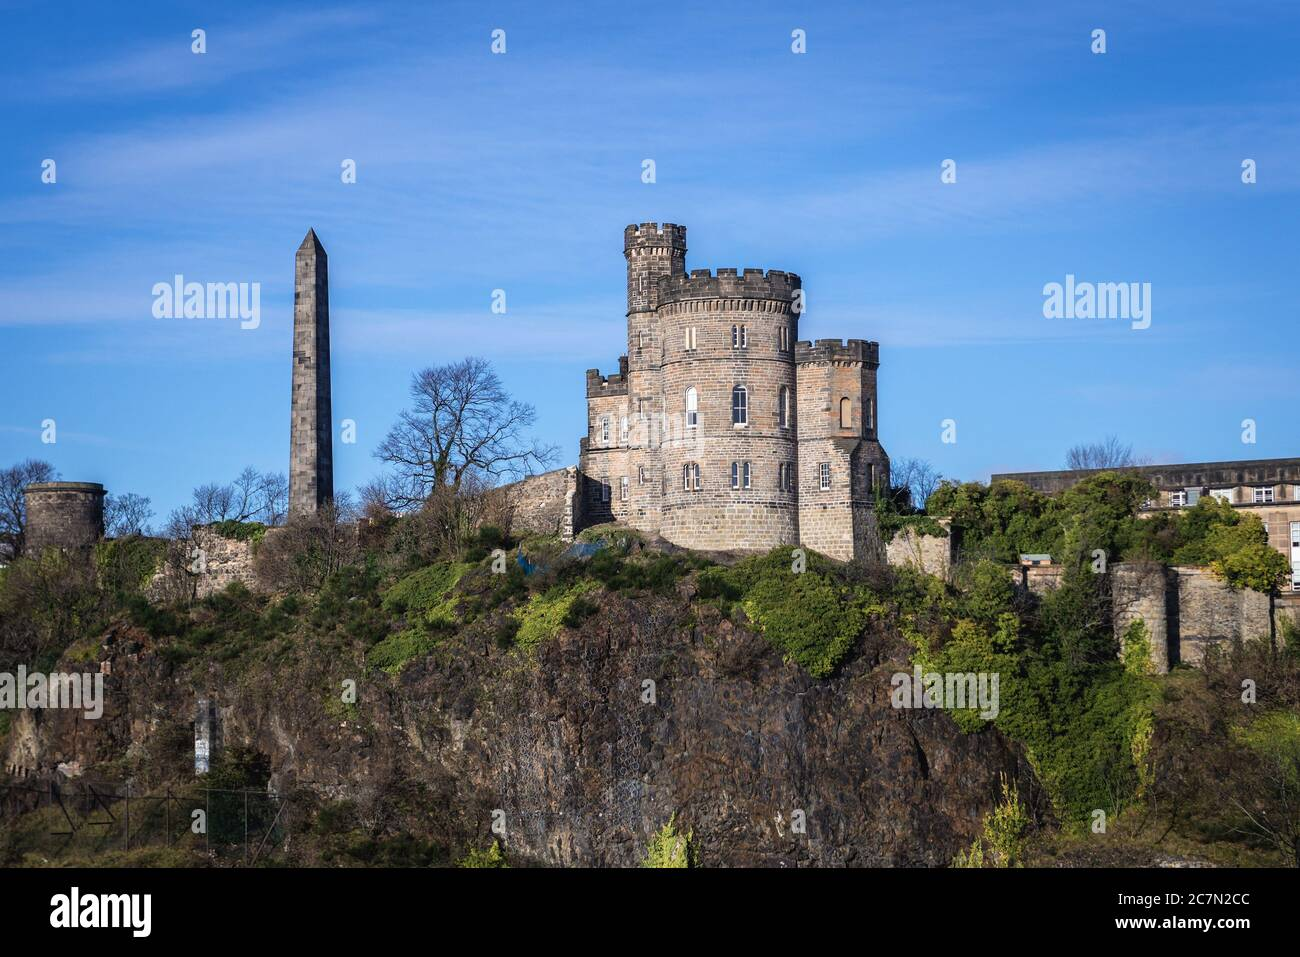 View with Political Martyrs Monument in Old Calton Burial Ground on Calton Hill in Edinburgh, the capital of Scotland, part of United Kingdom Stock Photo